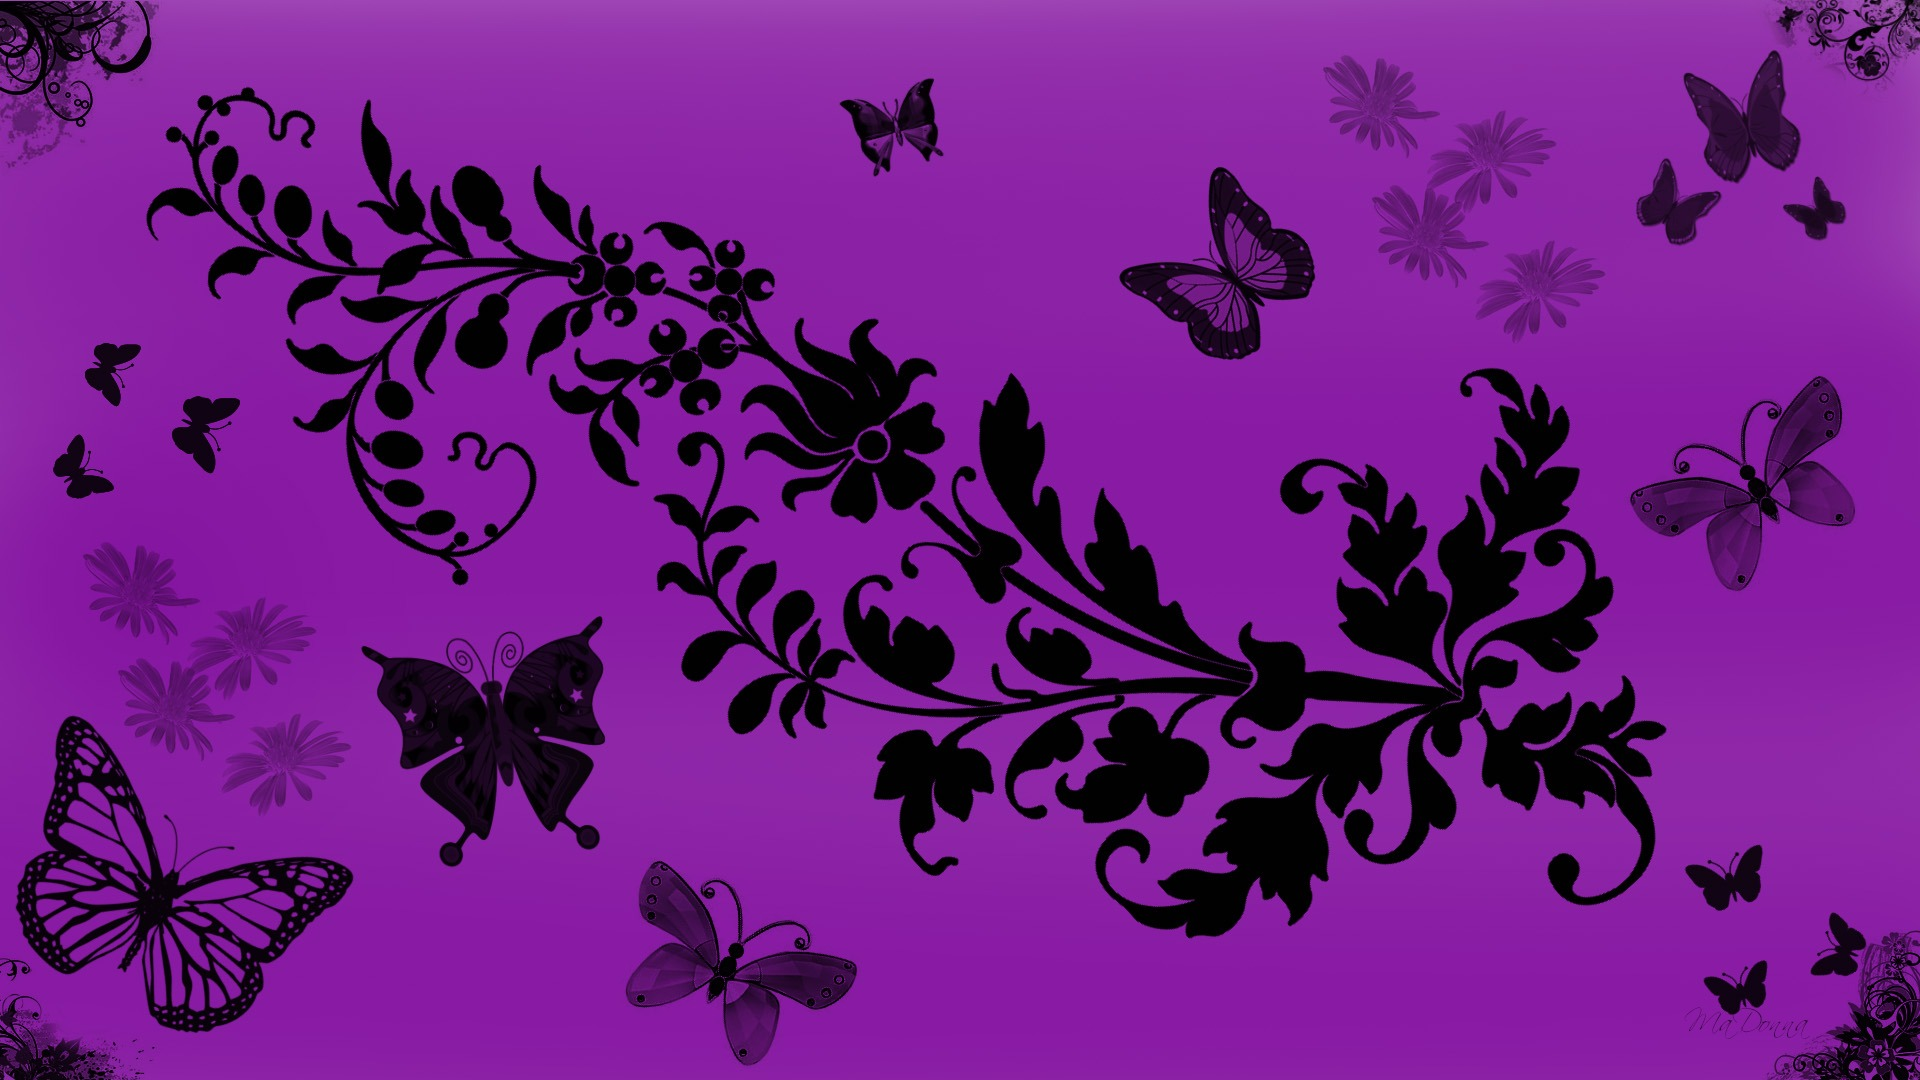 Purple Butterfly Wallpaper Hd at Abstract Monodomo 1920x1080